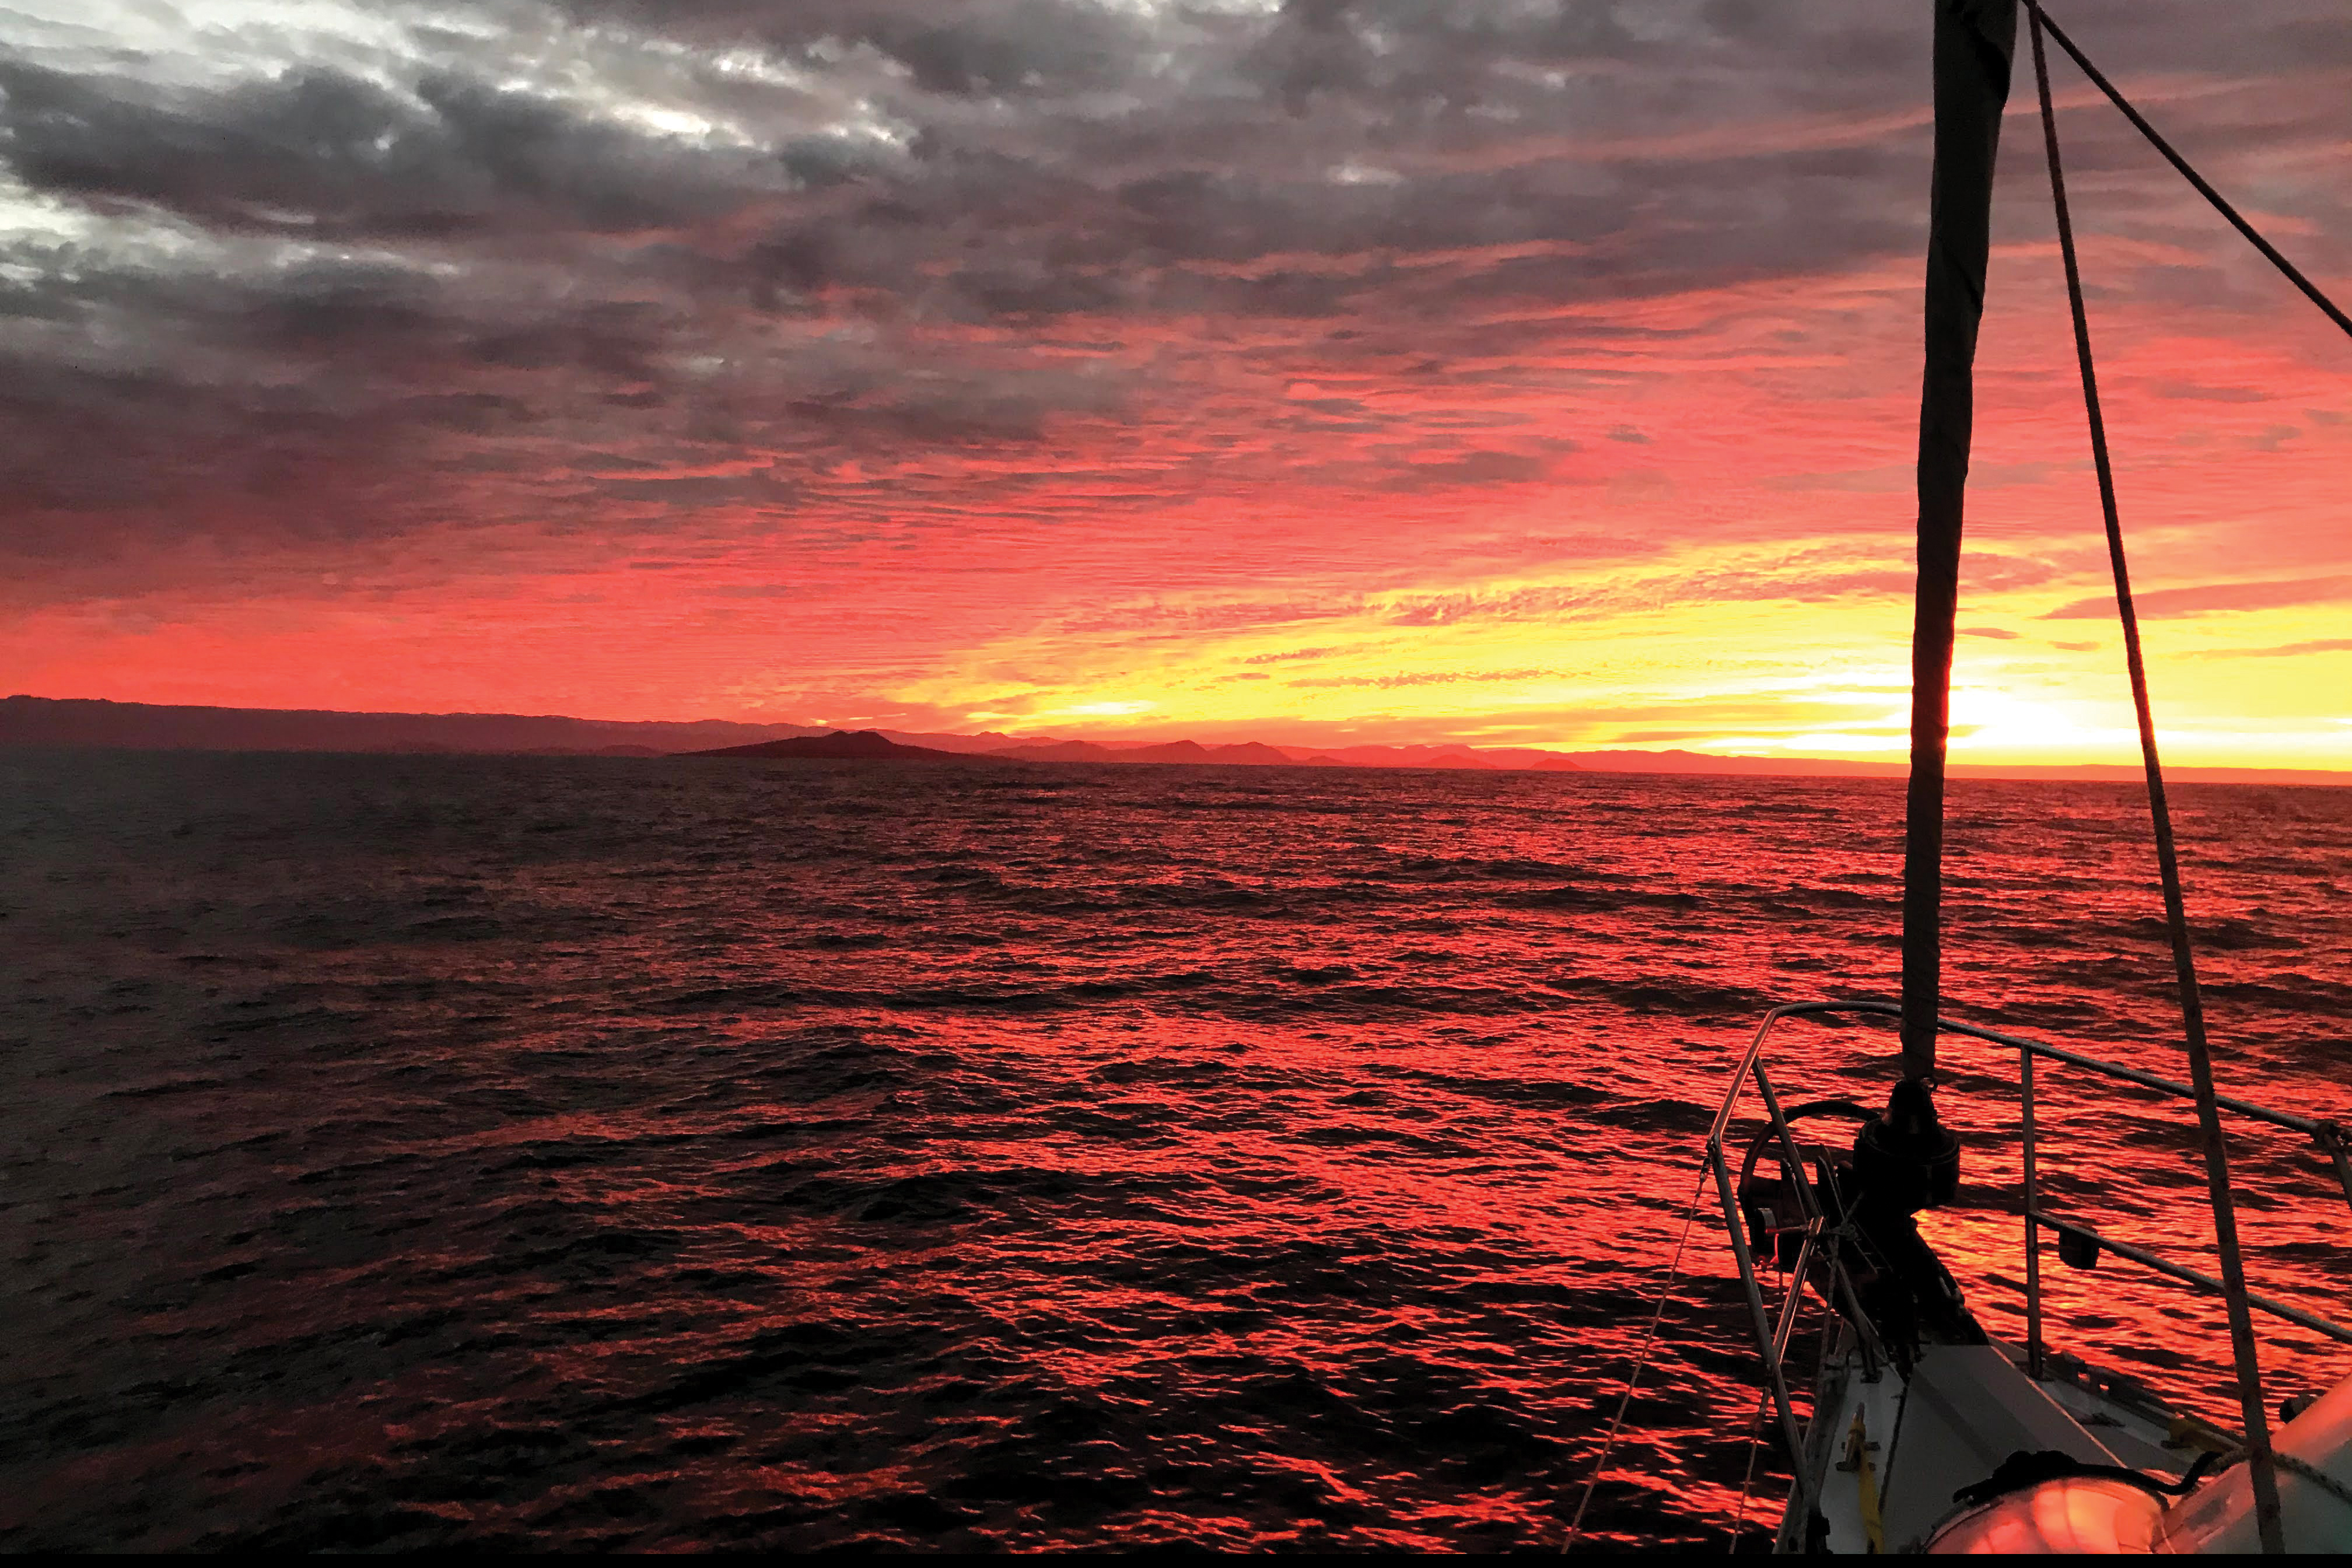 Pandemic Cruise to Baja and Back brings us sunset on the water.